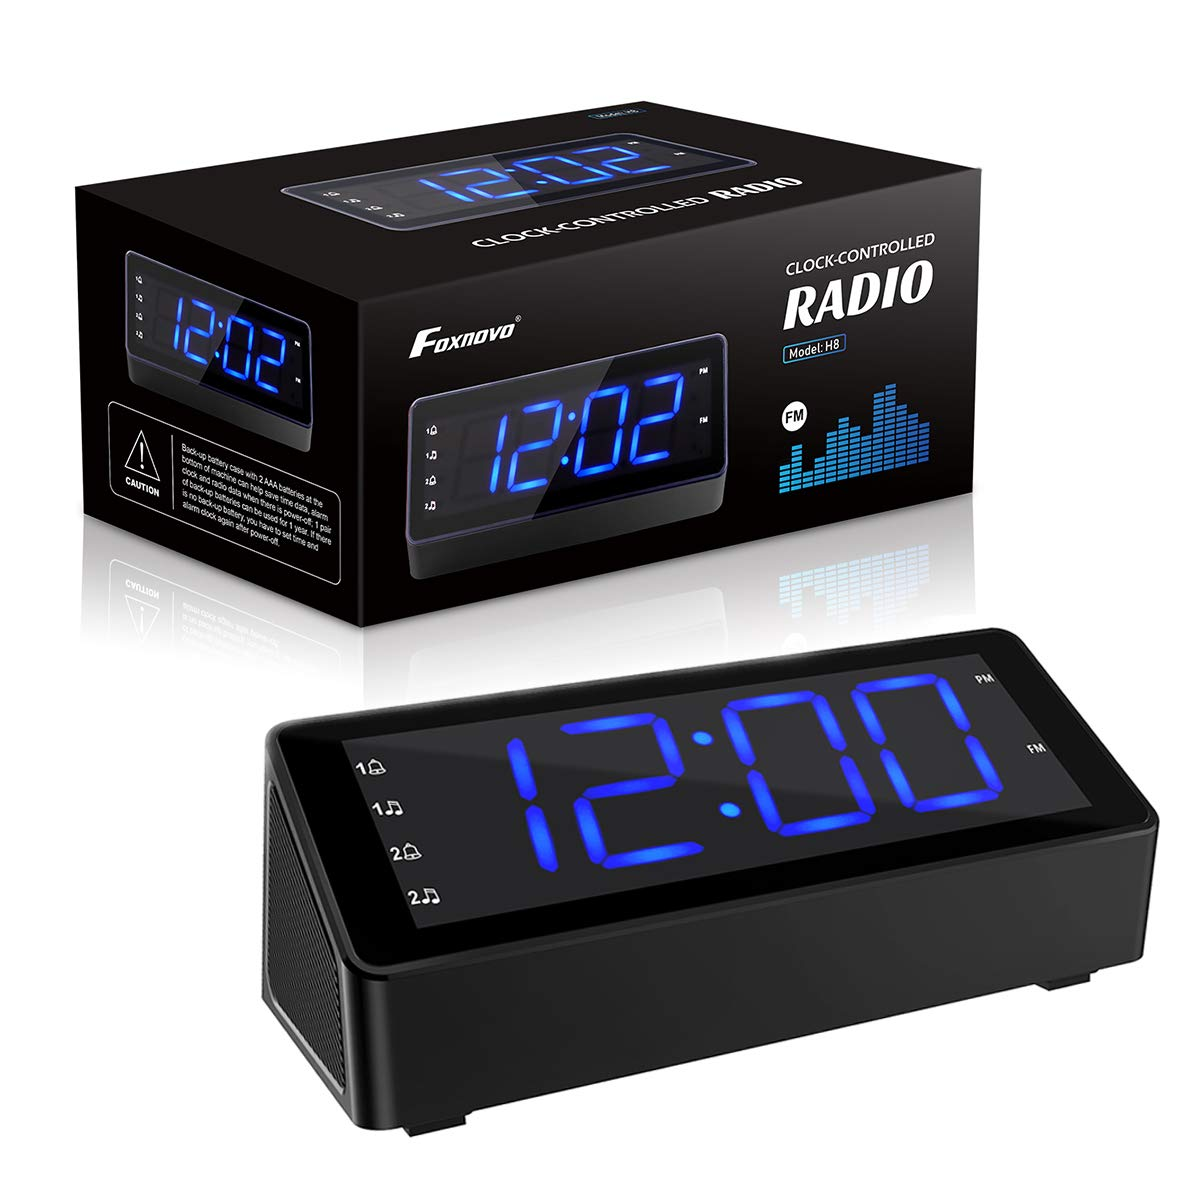 12//24 Hours FM Radio Alarm Clock with Dual USB Cable 3 LED Dimmable Screen Dual Alarms Backup Battery for Clock Setting Snooze Function Foxnovo Digital Alarm Clock for Bedrooms